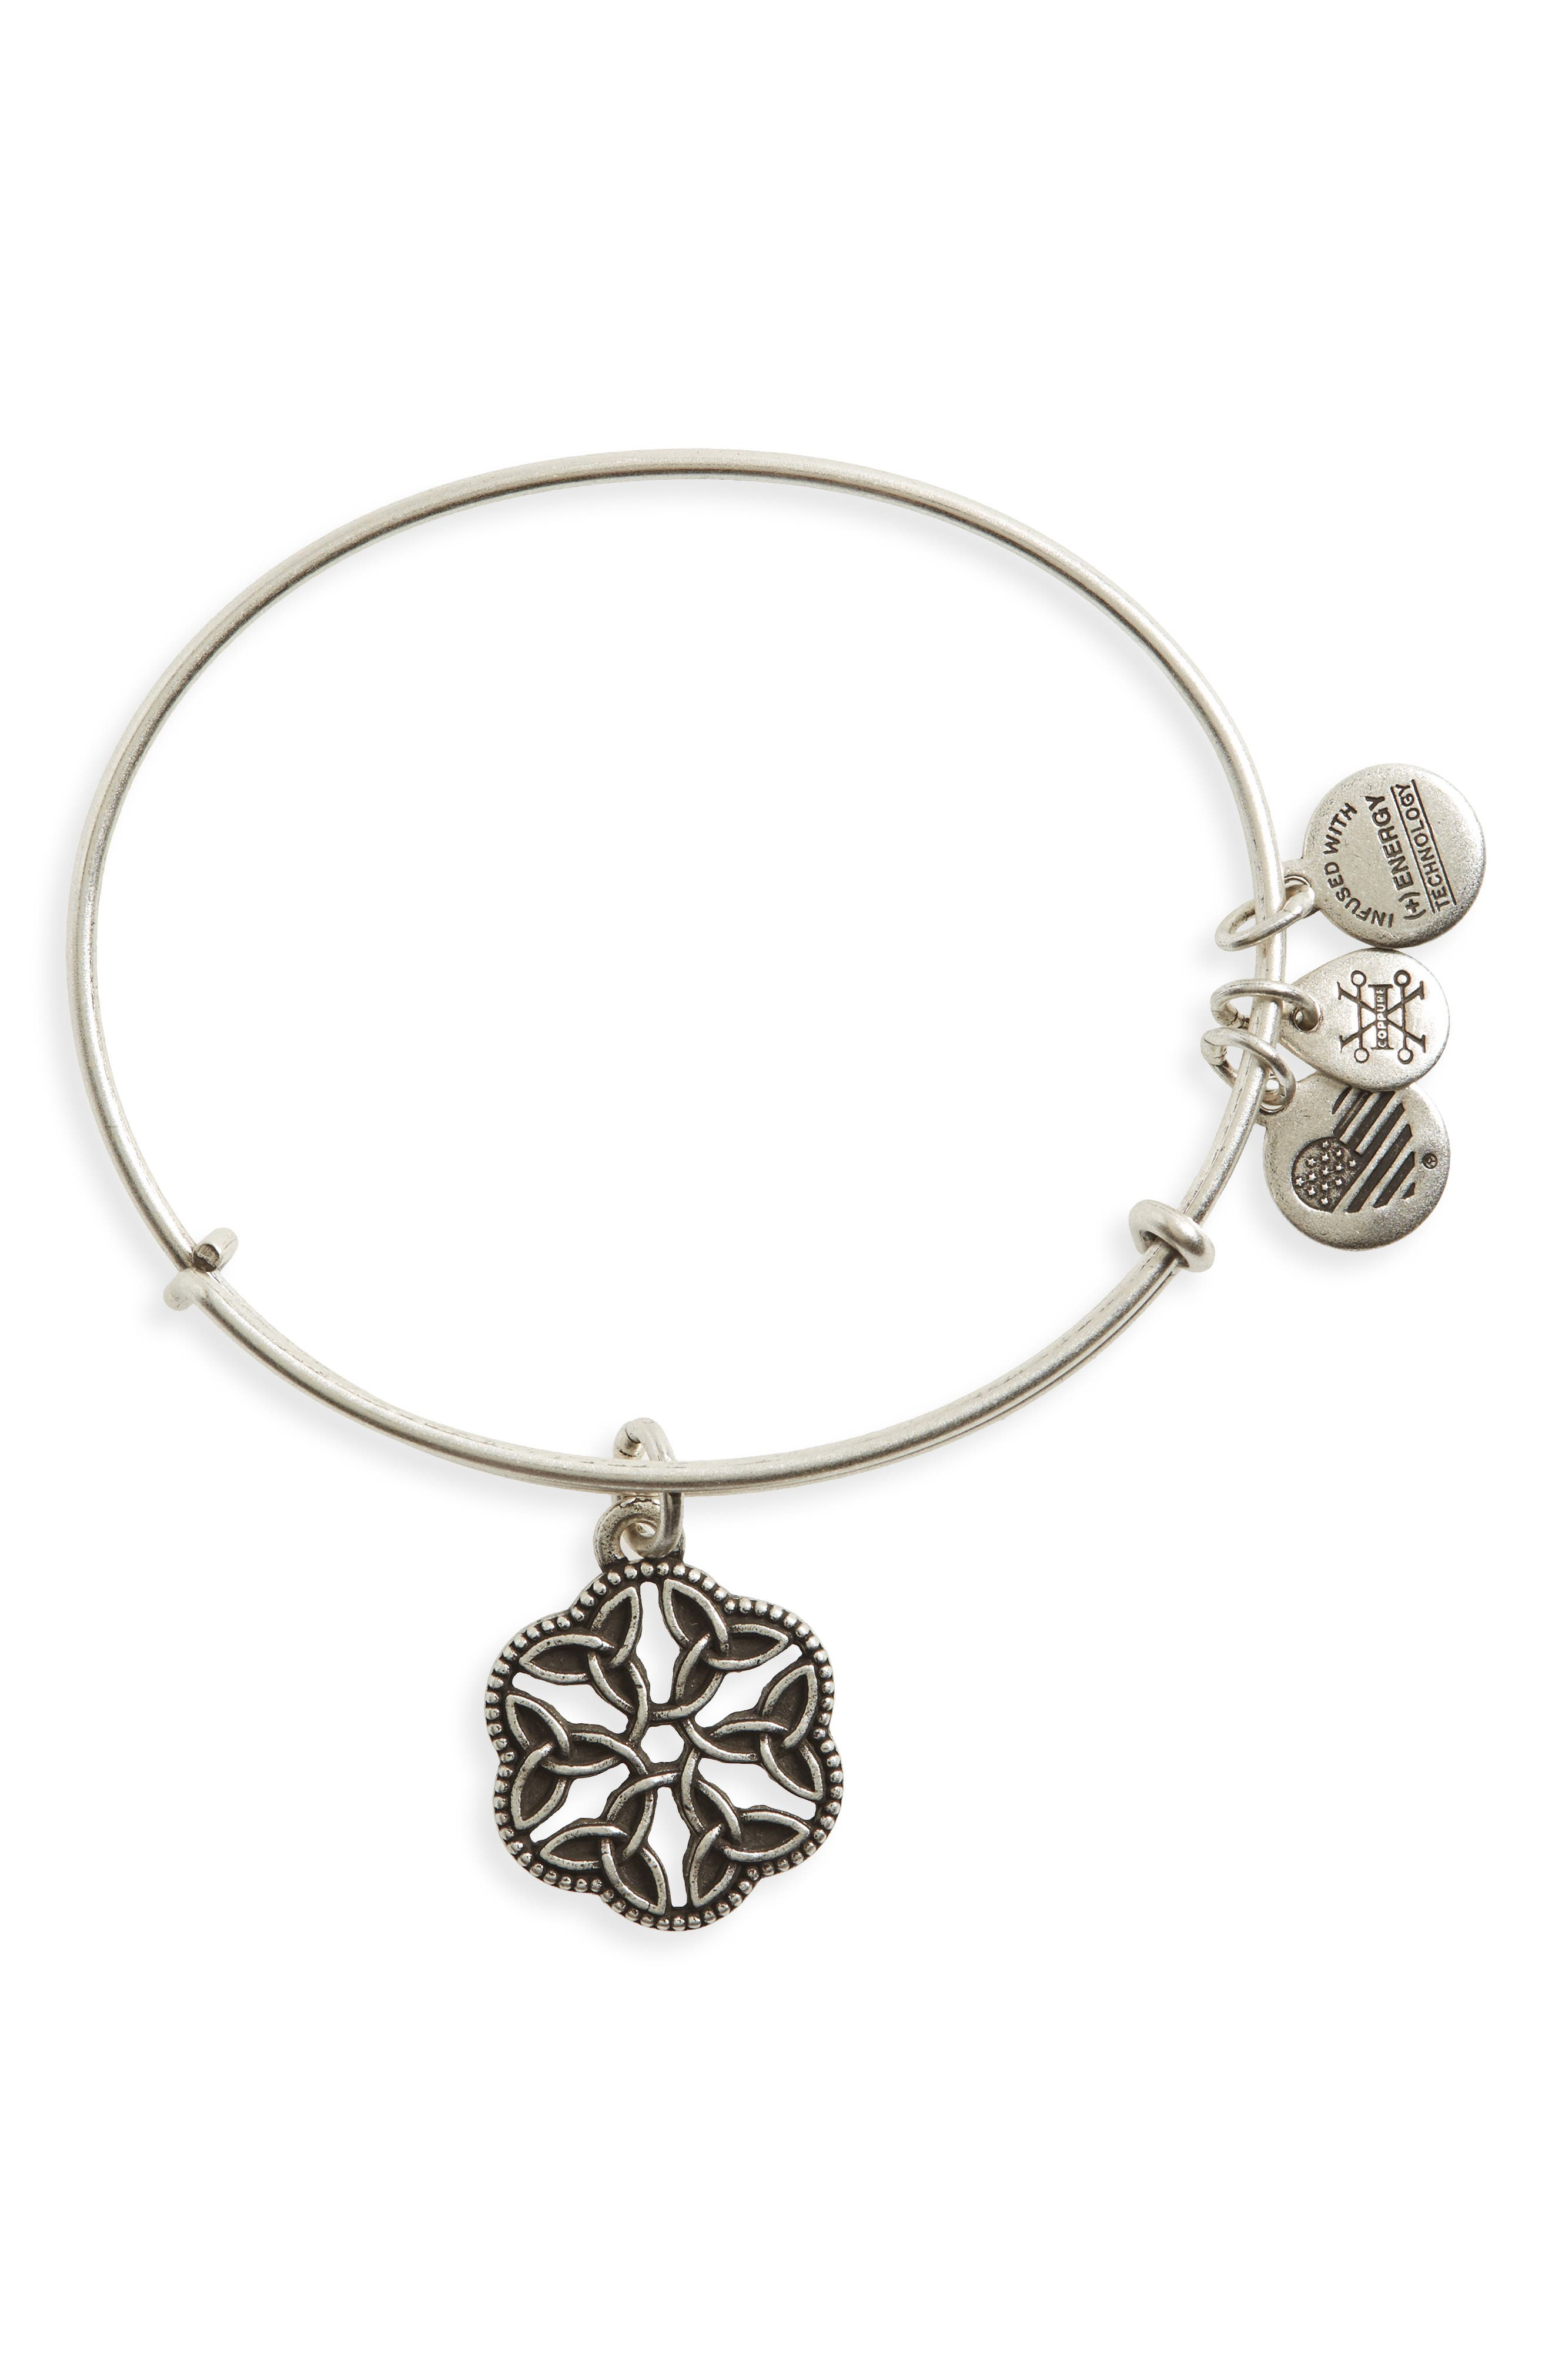 Main Image - Alex and Ani Endless Knot Bracelet